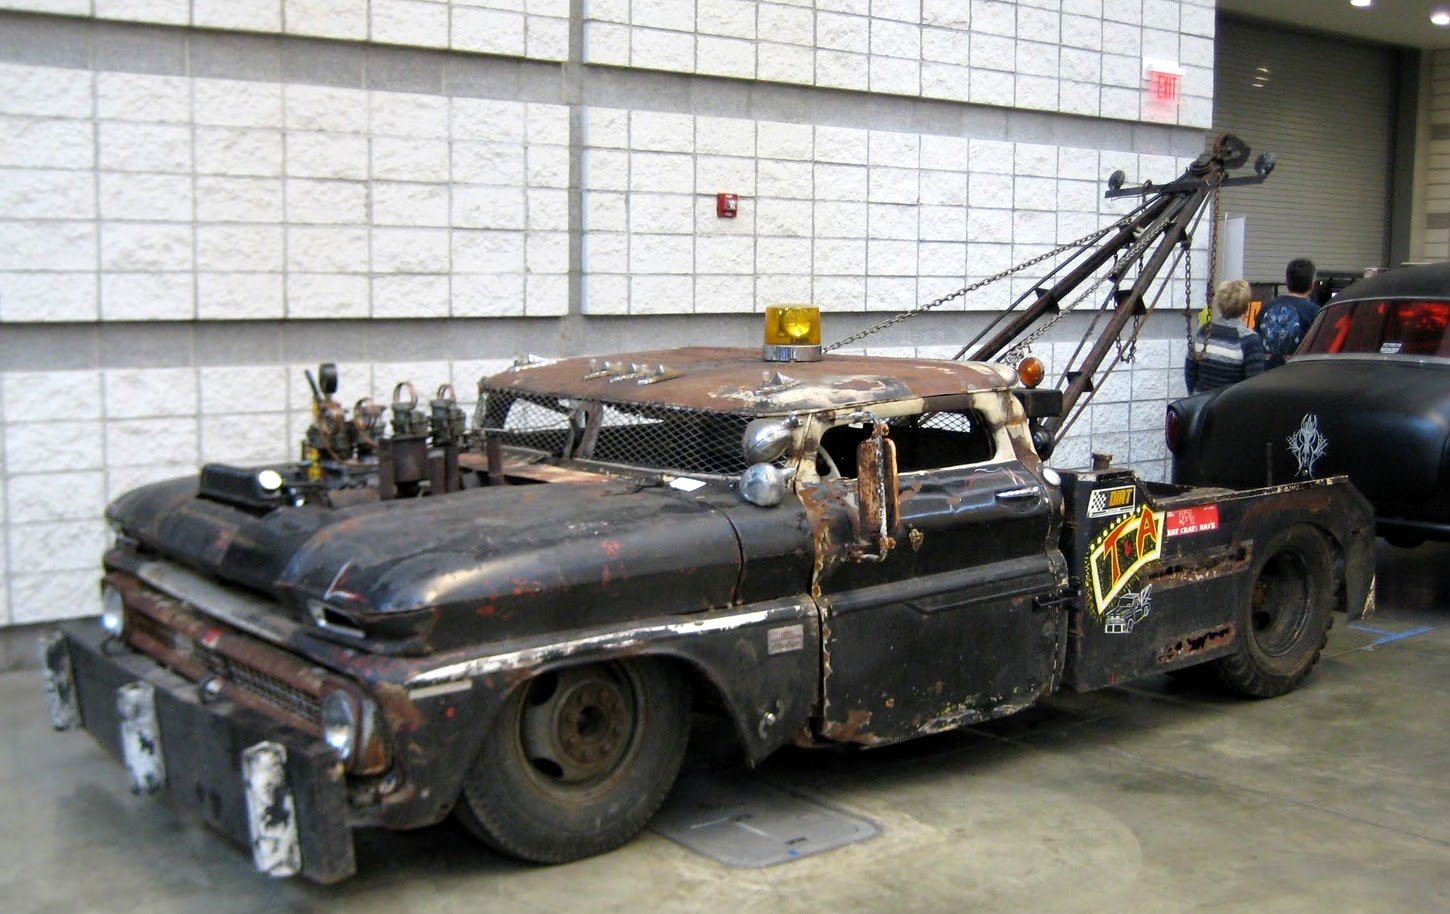 Chevrolet rat photo - 3